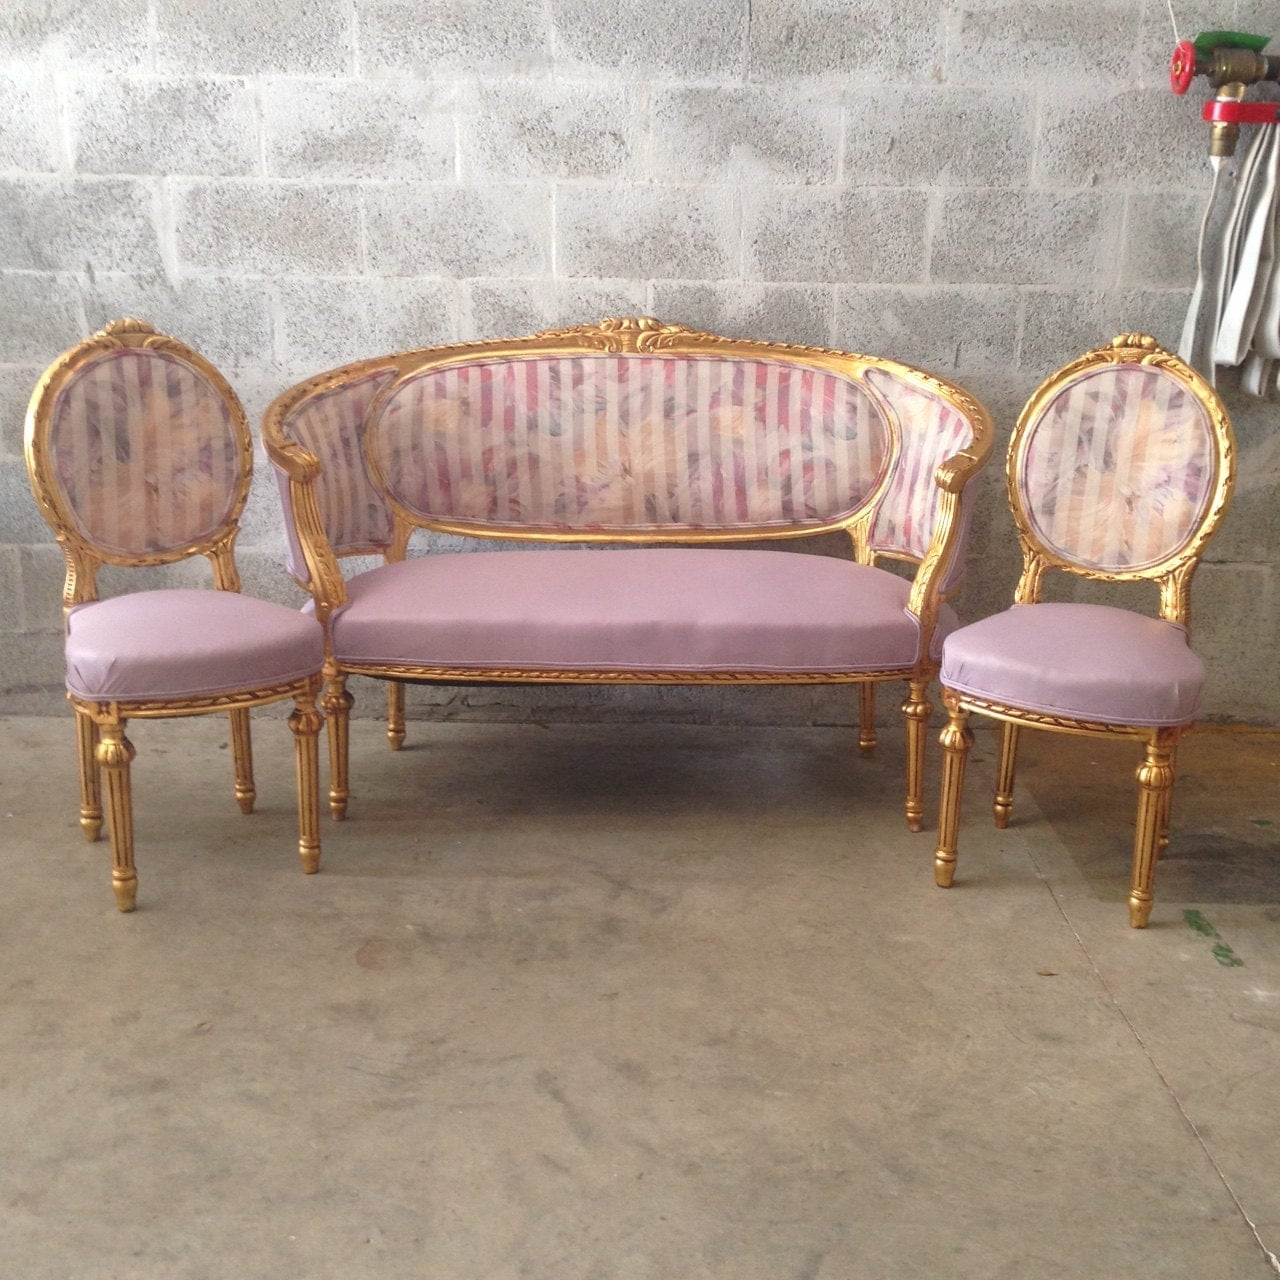 French Settee Antique Furniture French Louis Xvi 3 Piece